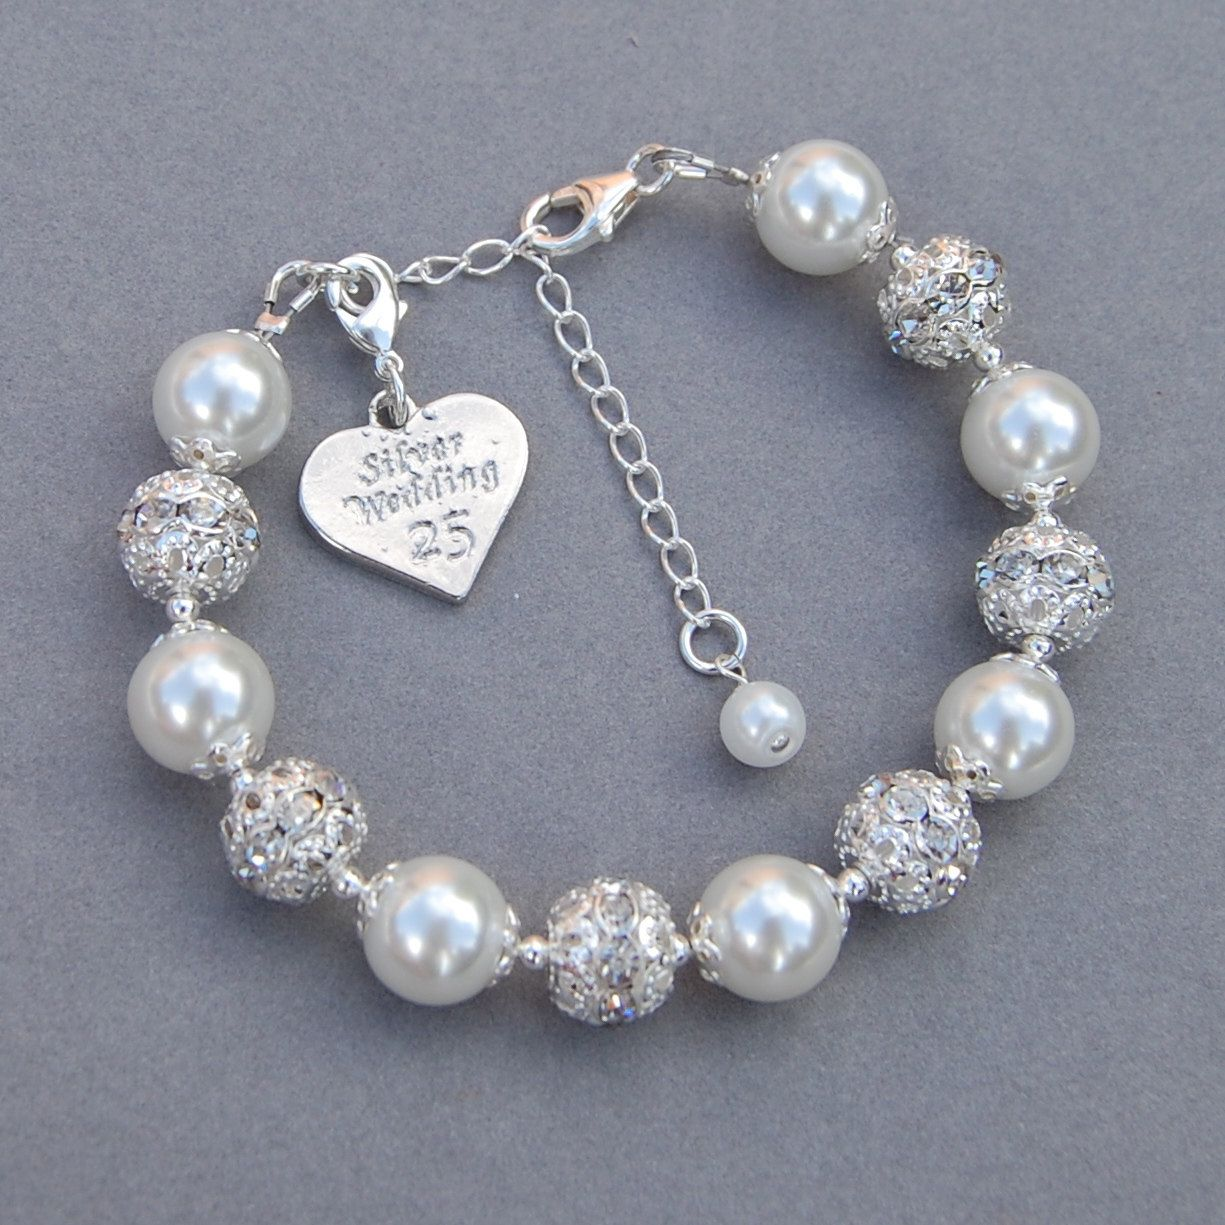 Silver Wedding Gift Anniversary Charm Bracelet 25th By Amidesigns On